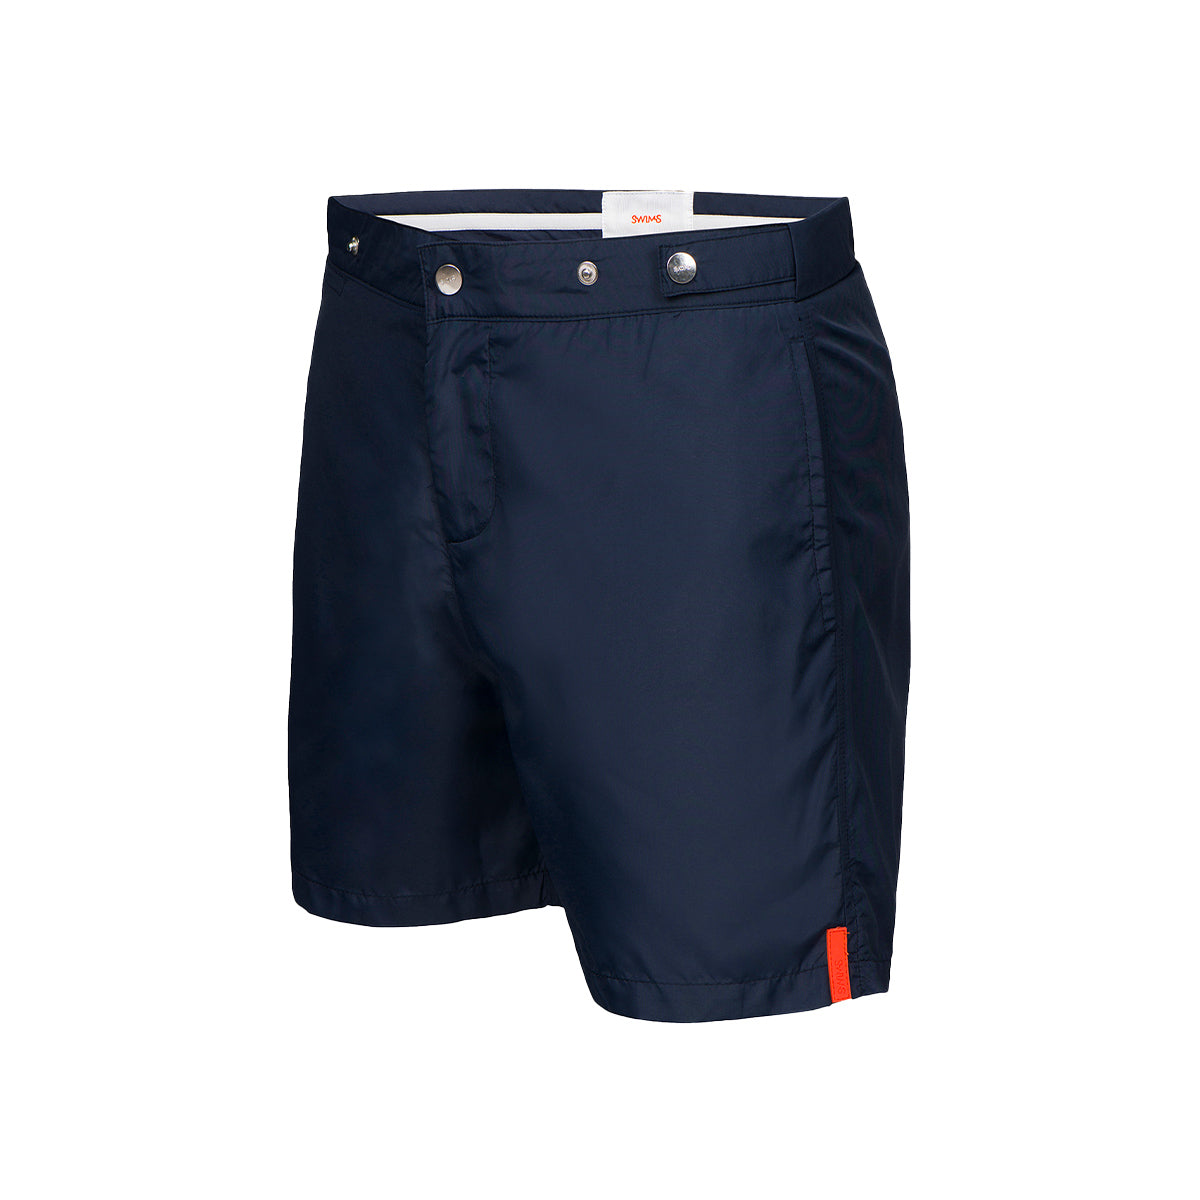 Praiano Solid Bathing Shorts - background::white,variant::navy